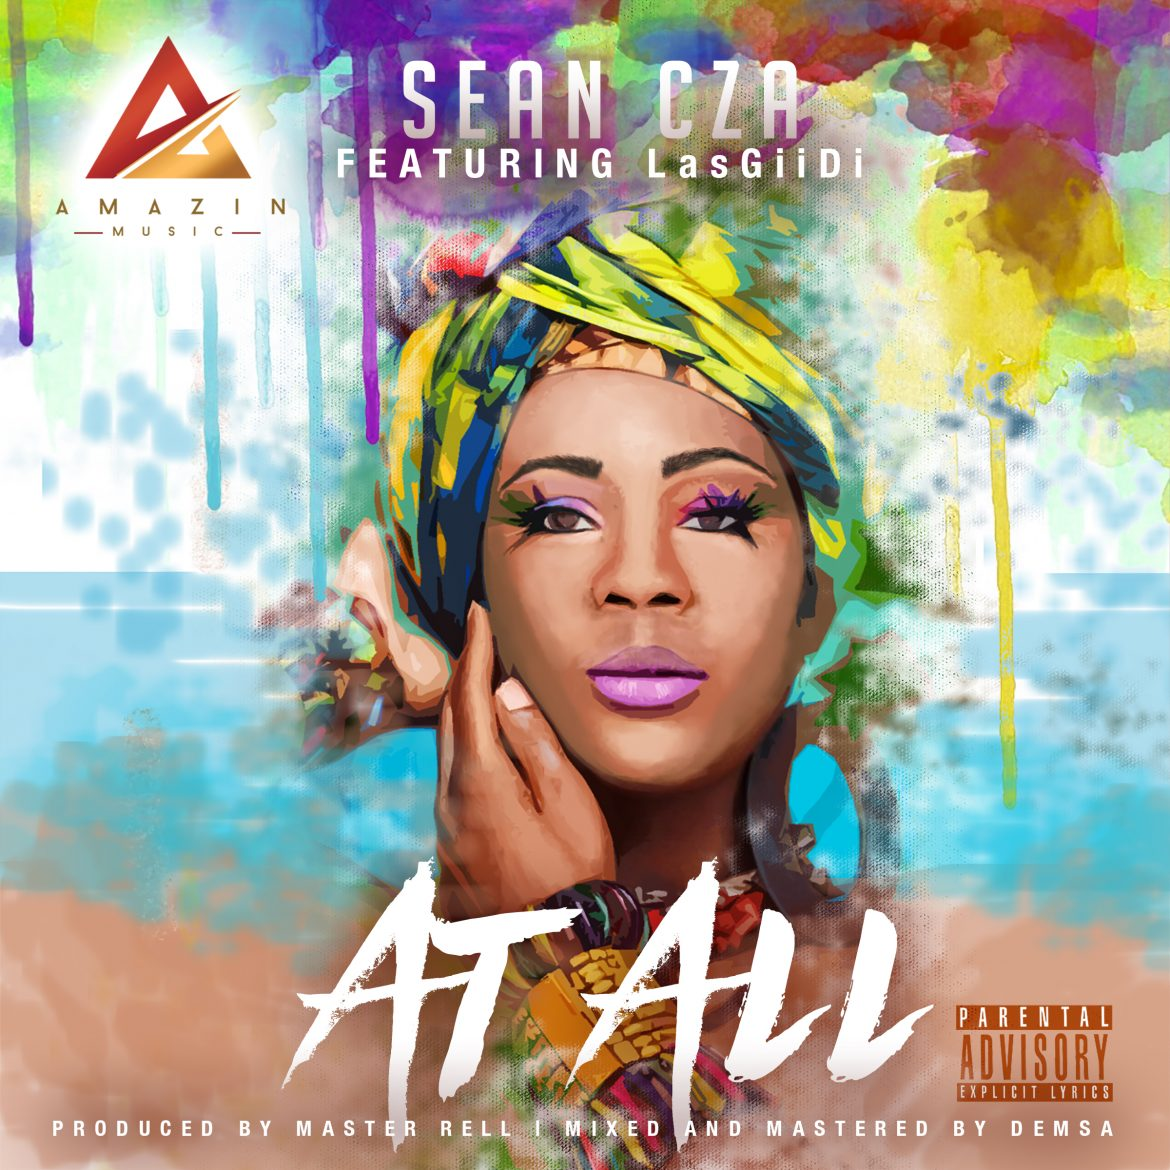 Sean Cza - AT ALL ft LasGiidi Prod By Dj Rell + (B-T-S Video)